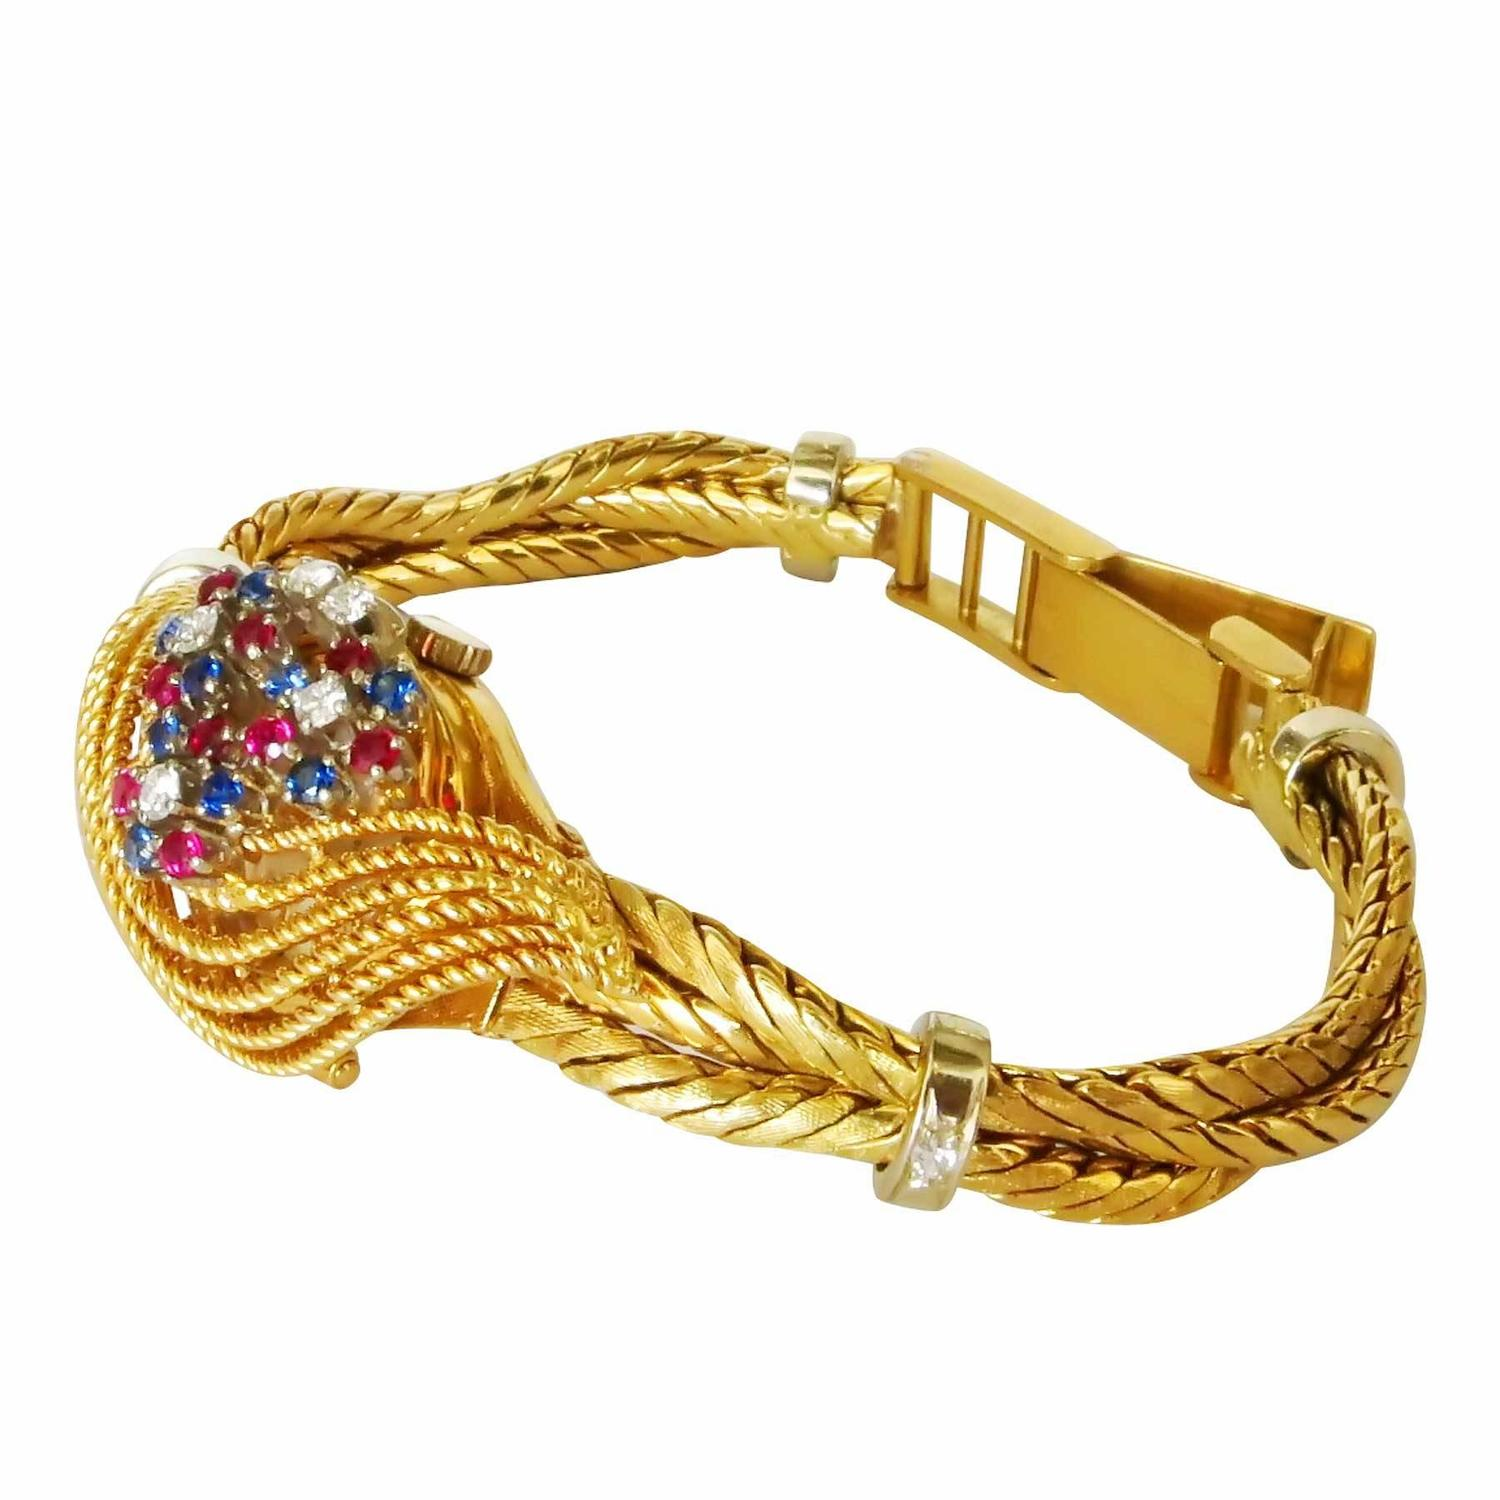 auctions karat online gold bracelet dwts an david hindman diamond bangle leslie yellow cable classics yurman and